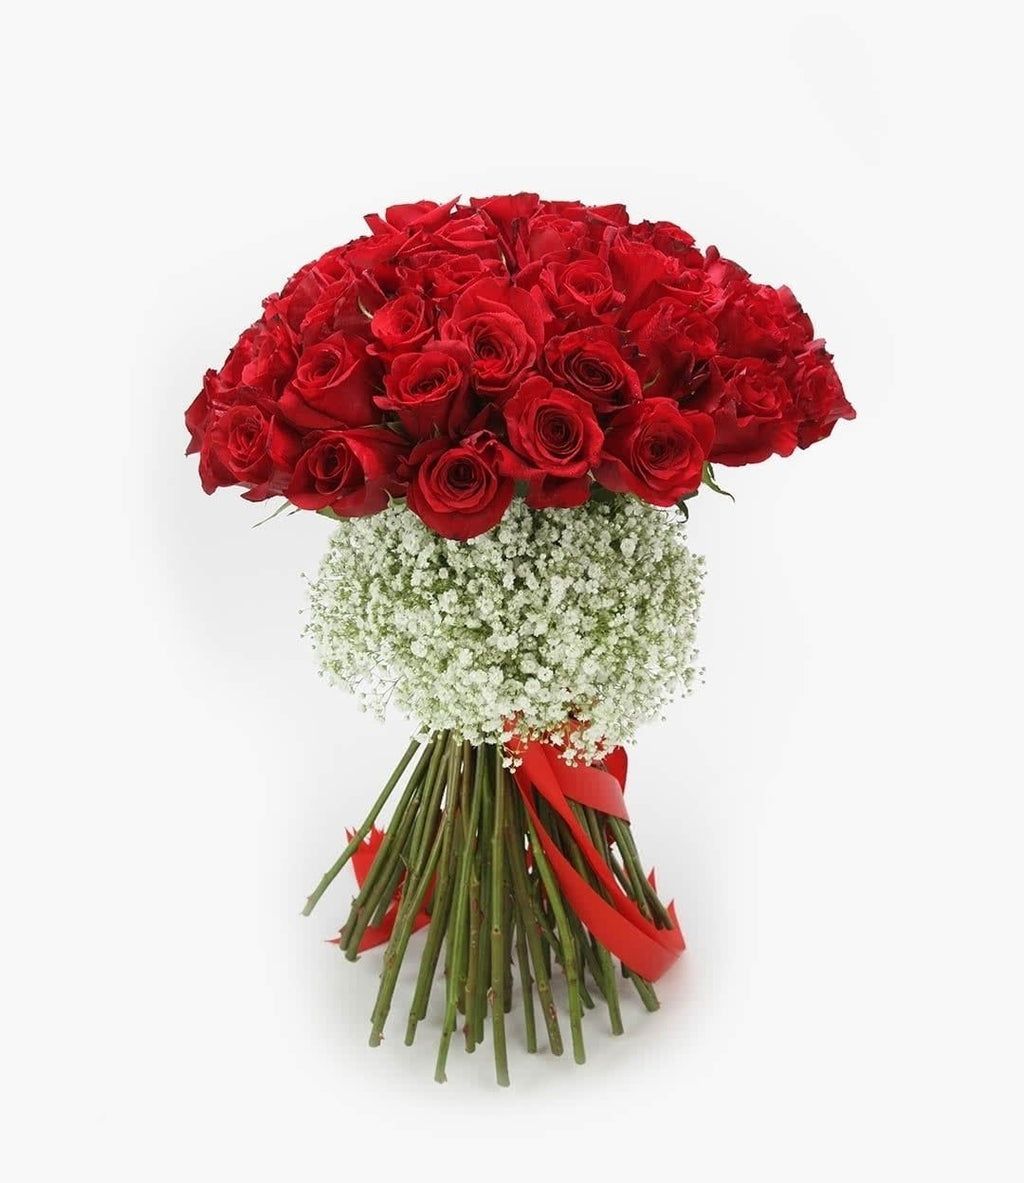 50 Red Vintage Rose Bouquet